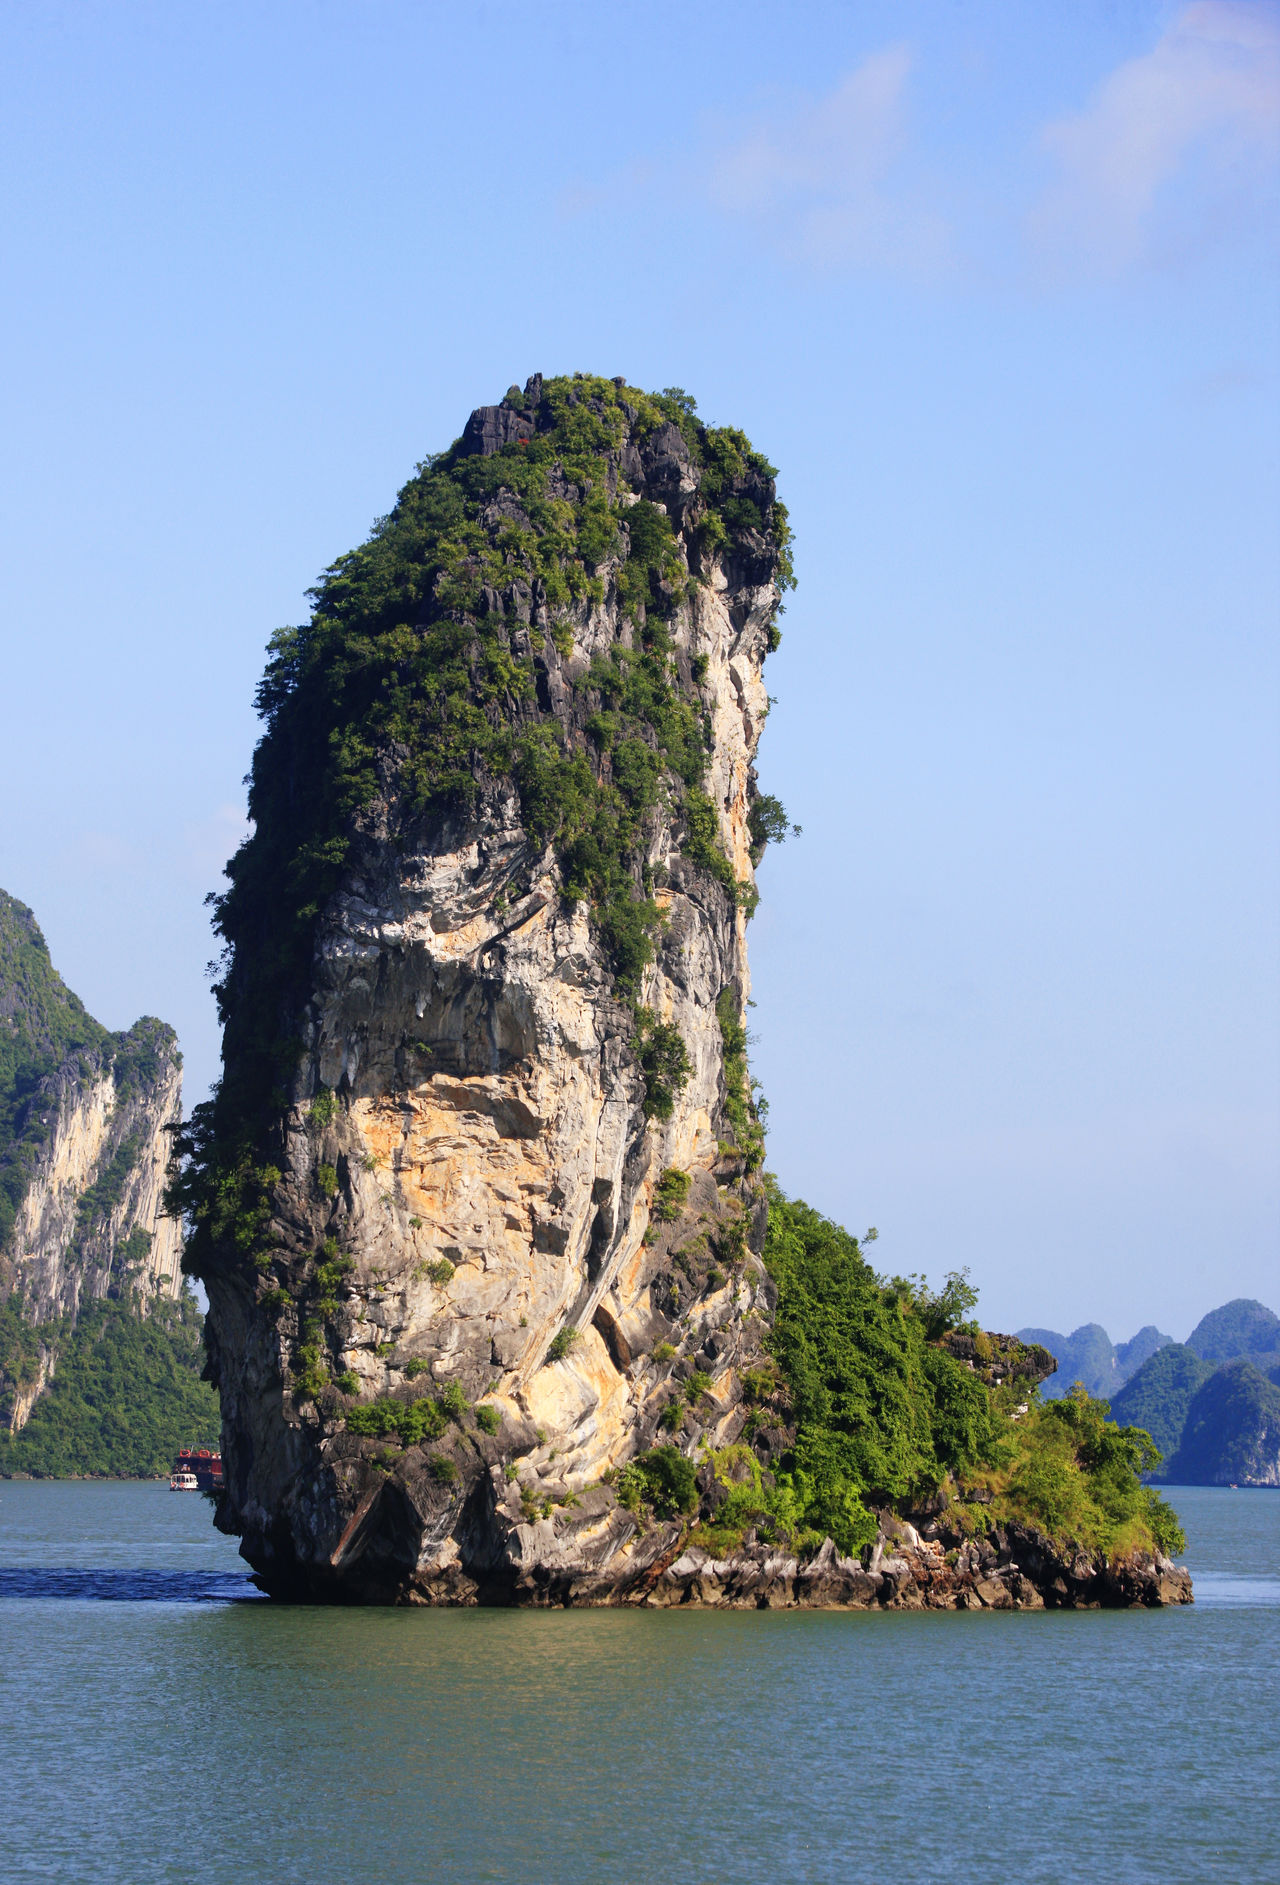 Halong Bay Beauty In Nature Blue Clear Sky Day Halong Halong Bay  Halong Bay Vietnam Horizontal Landscape Nature No People Outdoors Rock - Object Scenics Sea Sky Tranquil Scene Tranquility Tree Tropical Climate Vietnam Water